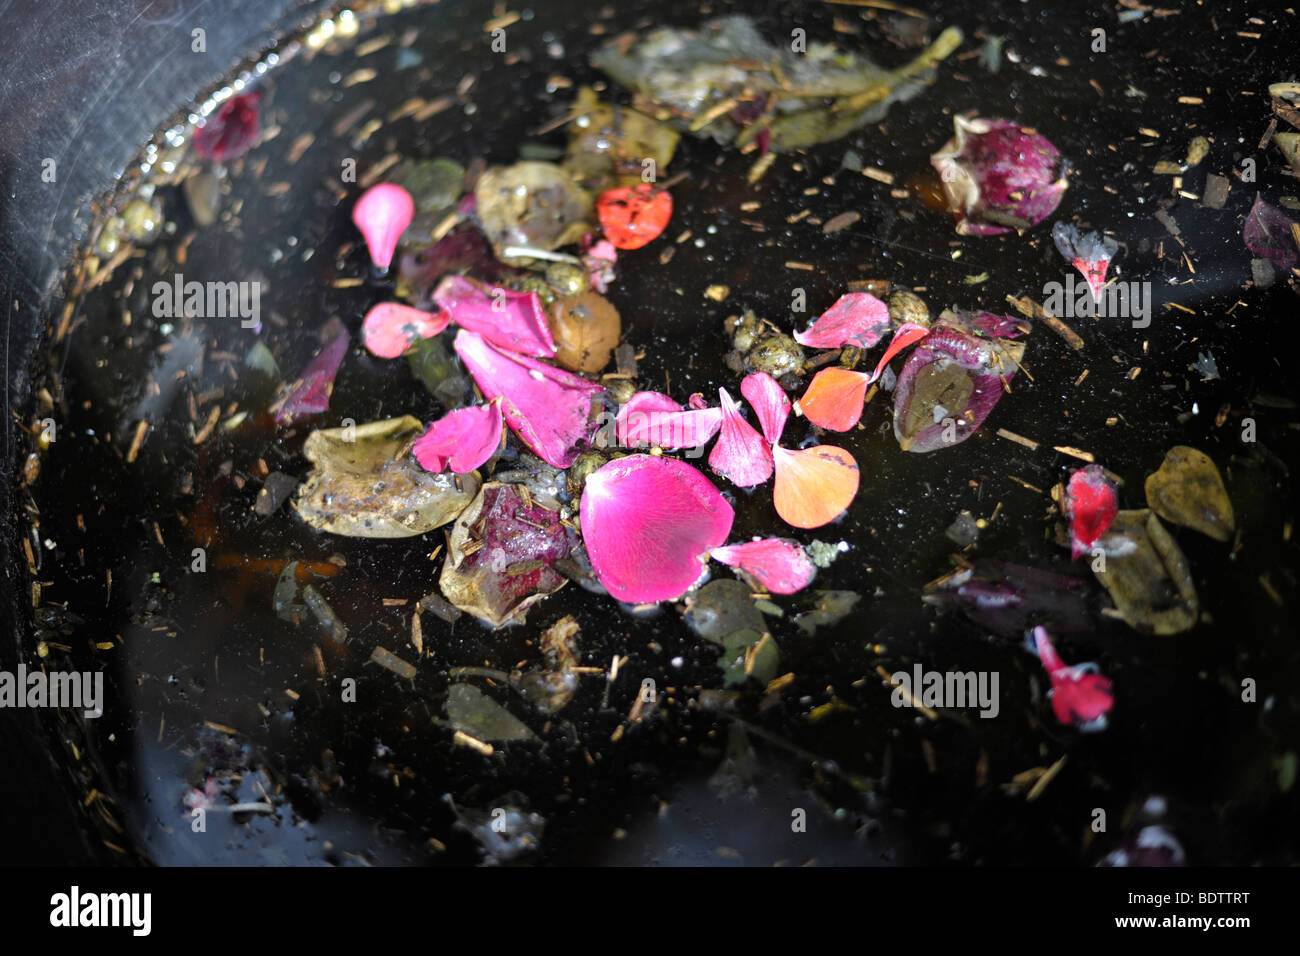 flower petals on water - Stock Image